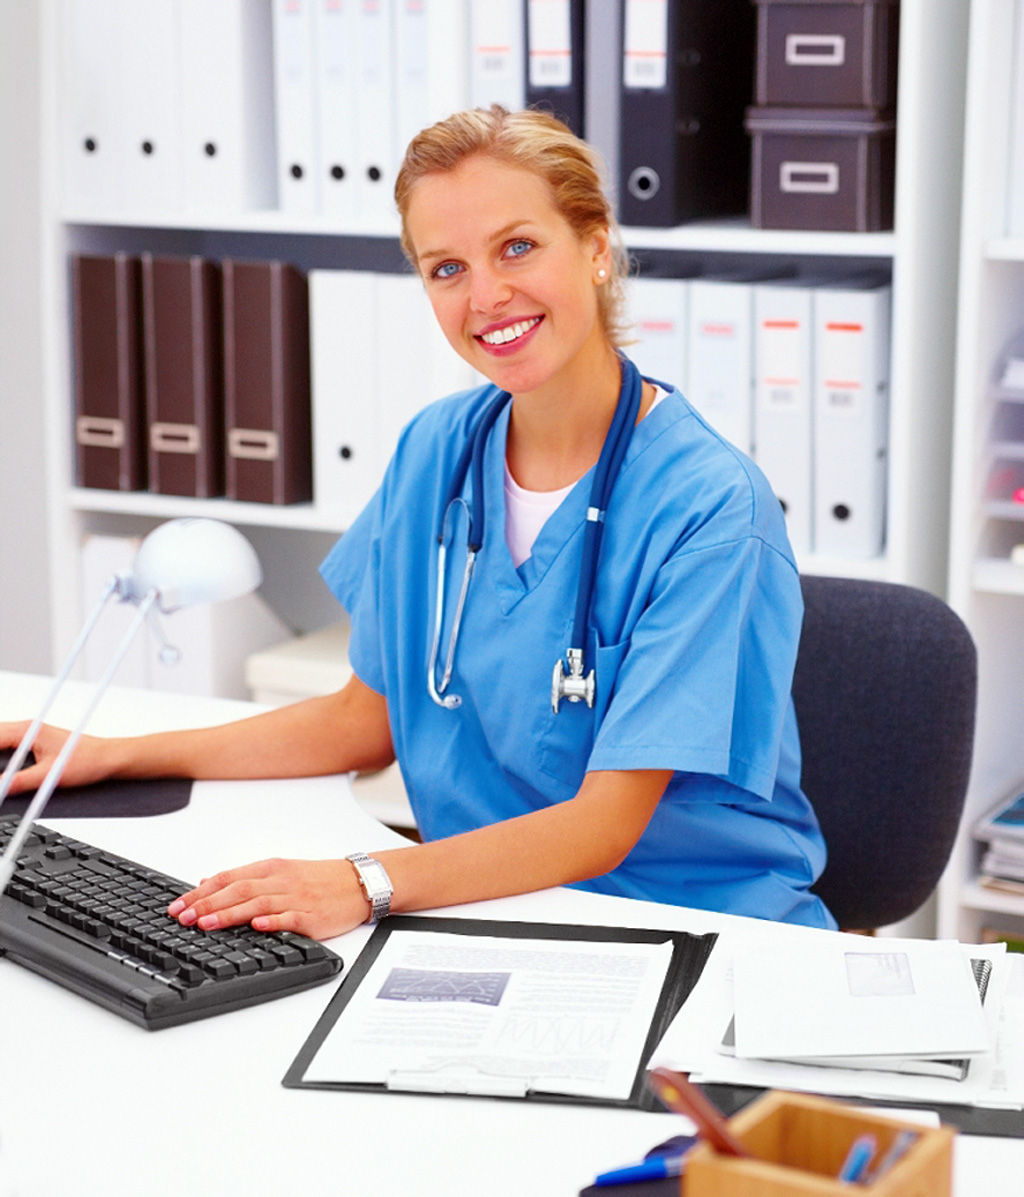 Medical Billing & Coding with CPC Certification